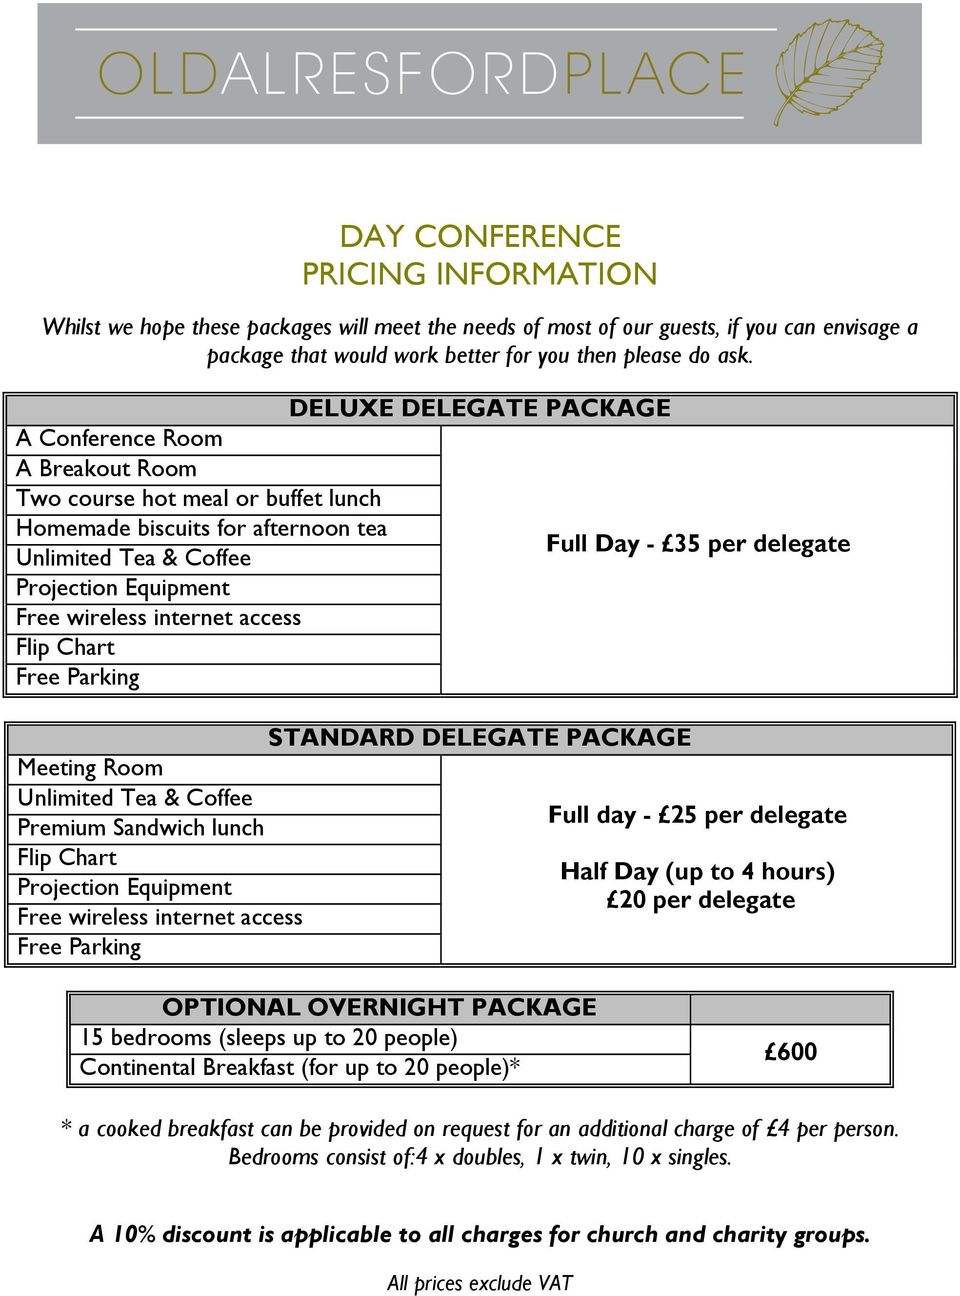 STANDARD DELEGATE PACKAGE Meeting Room Full day - 25 per delegate Premium Sandwich lunch Half Day (up to 4 hours) 20 per delegate Free wireless internet access Free Parking OPTIONAL OVERNIGHT PACKAGE